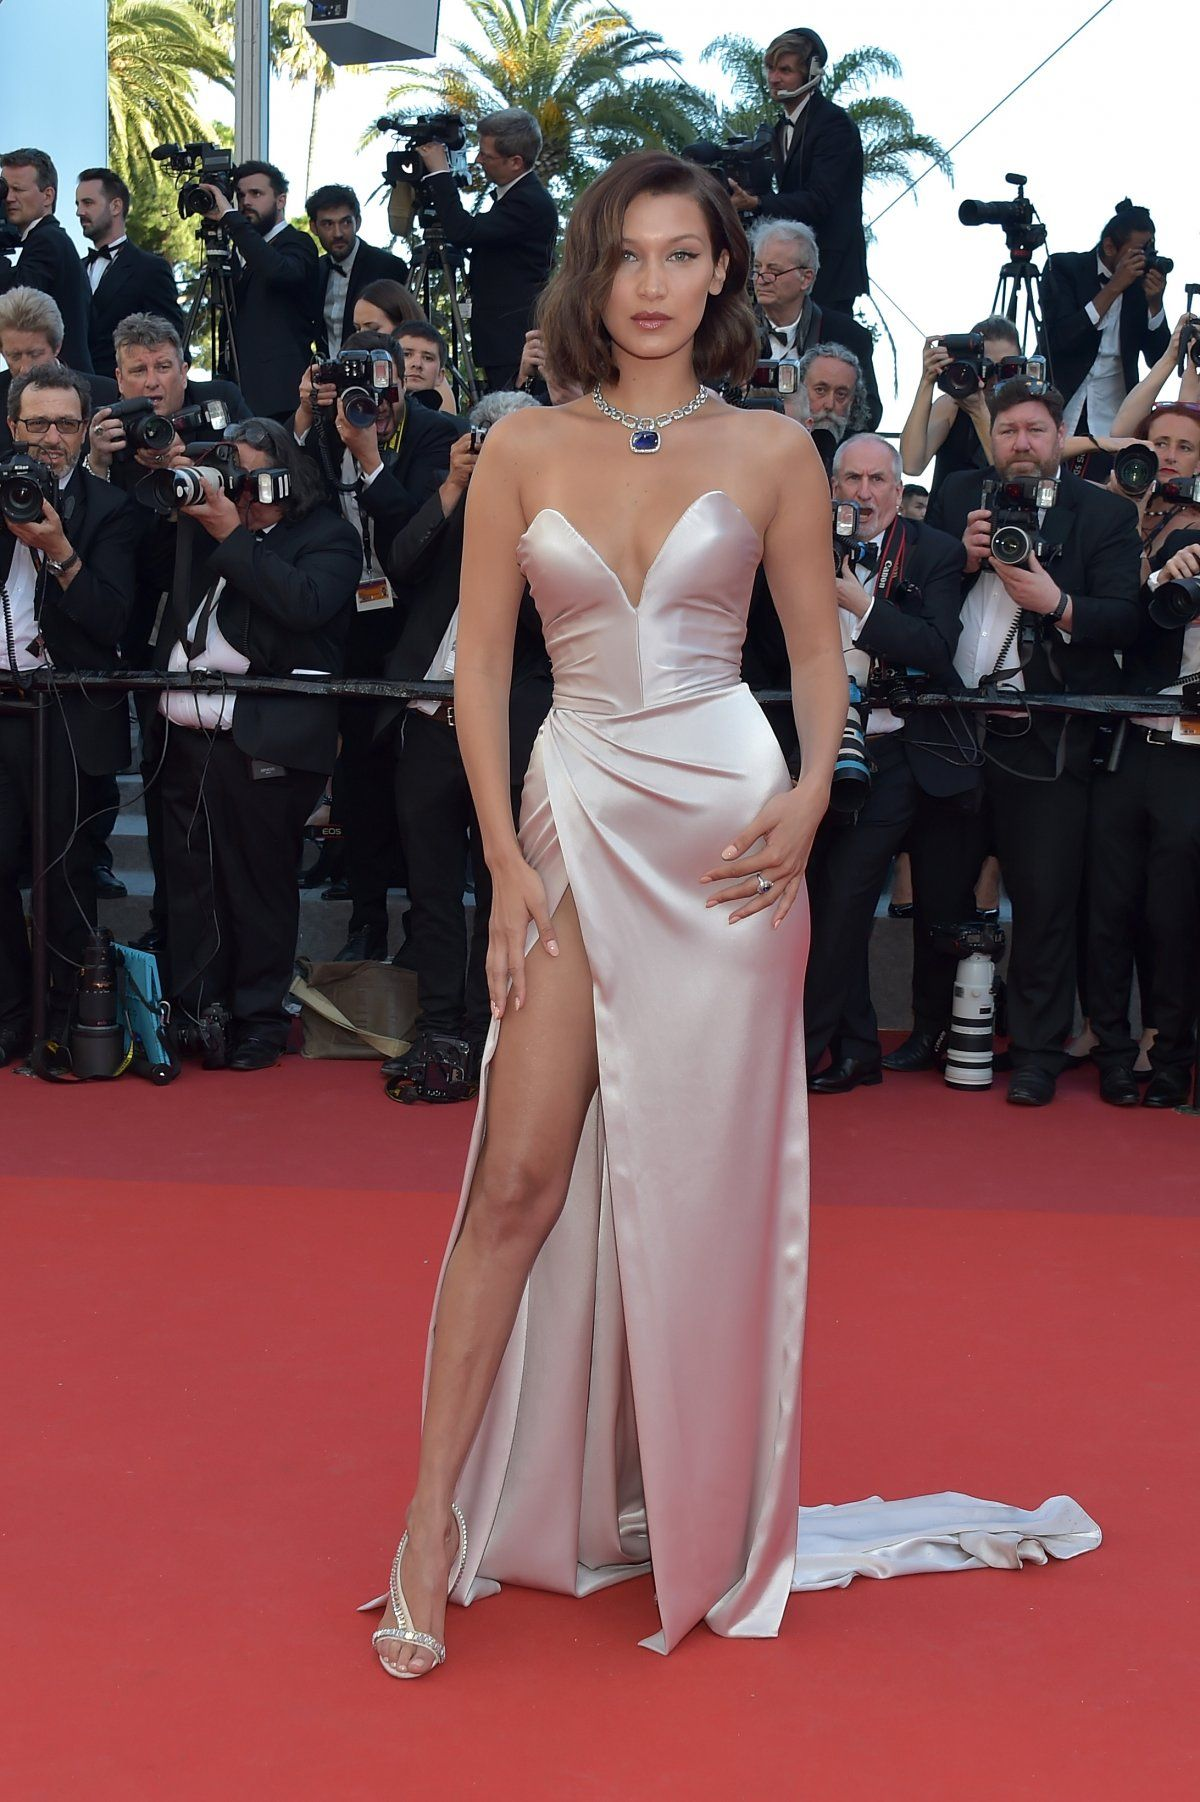 Cannes France May Bella Hadid Attends The Ismaels Ghosts Les Fantomes Dismael Screening And Opening Gala During The Annual Cannes Film Festival At